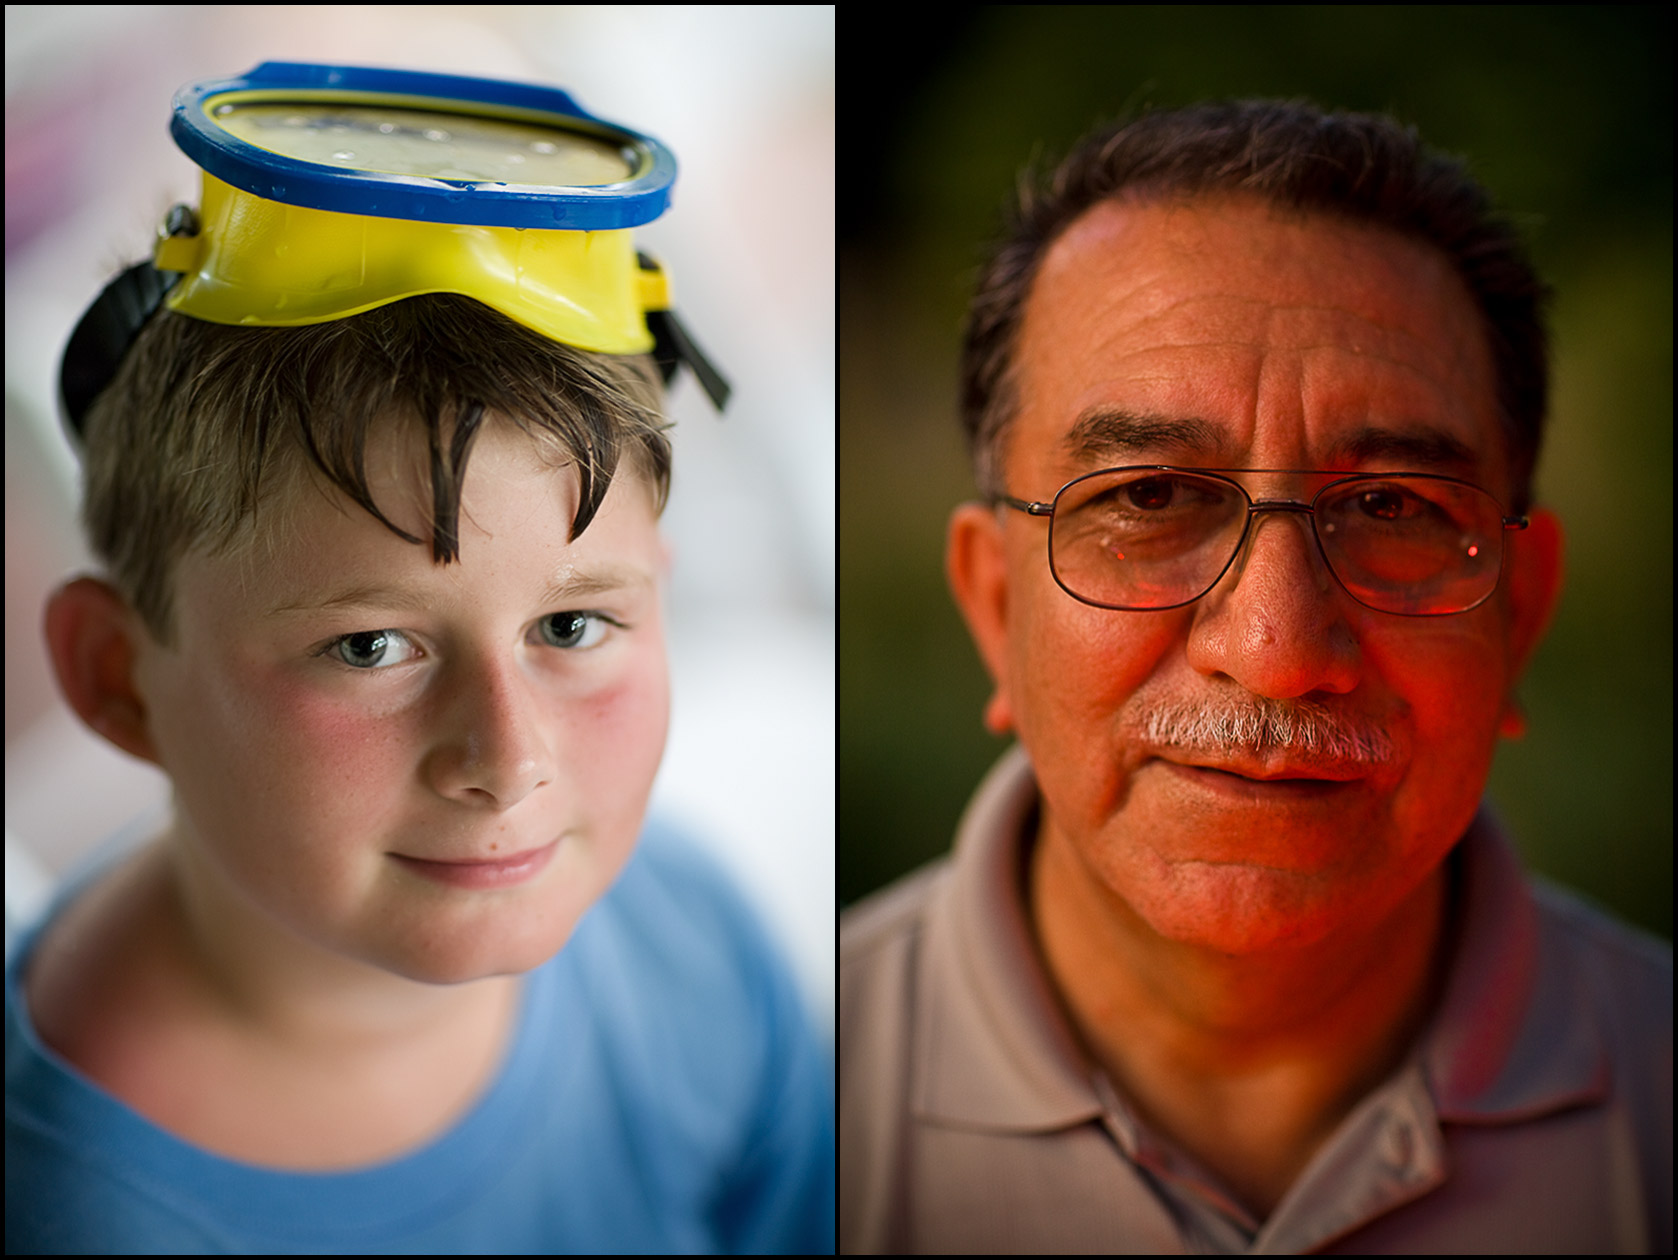 Faces: Young boy with scuba mask on his head (L), A caterer with orange glow from fire on his skin (R).